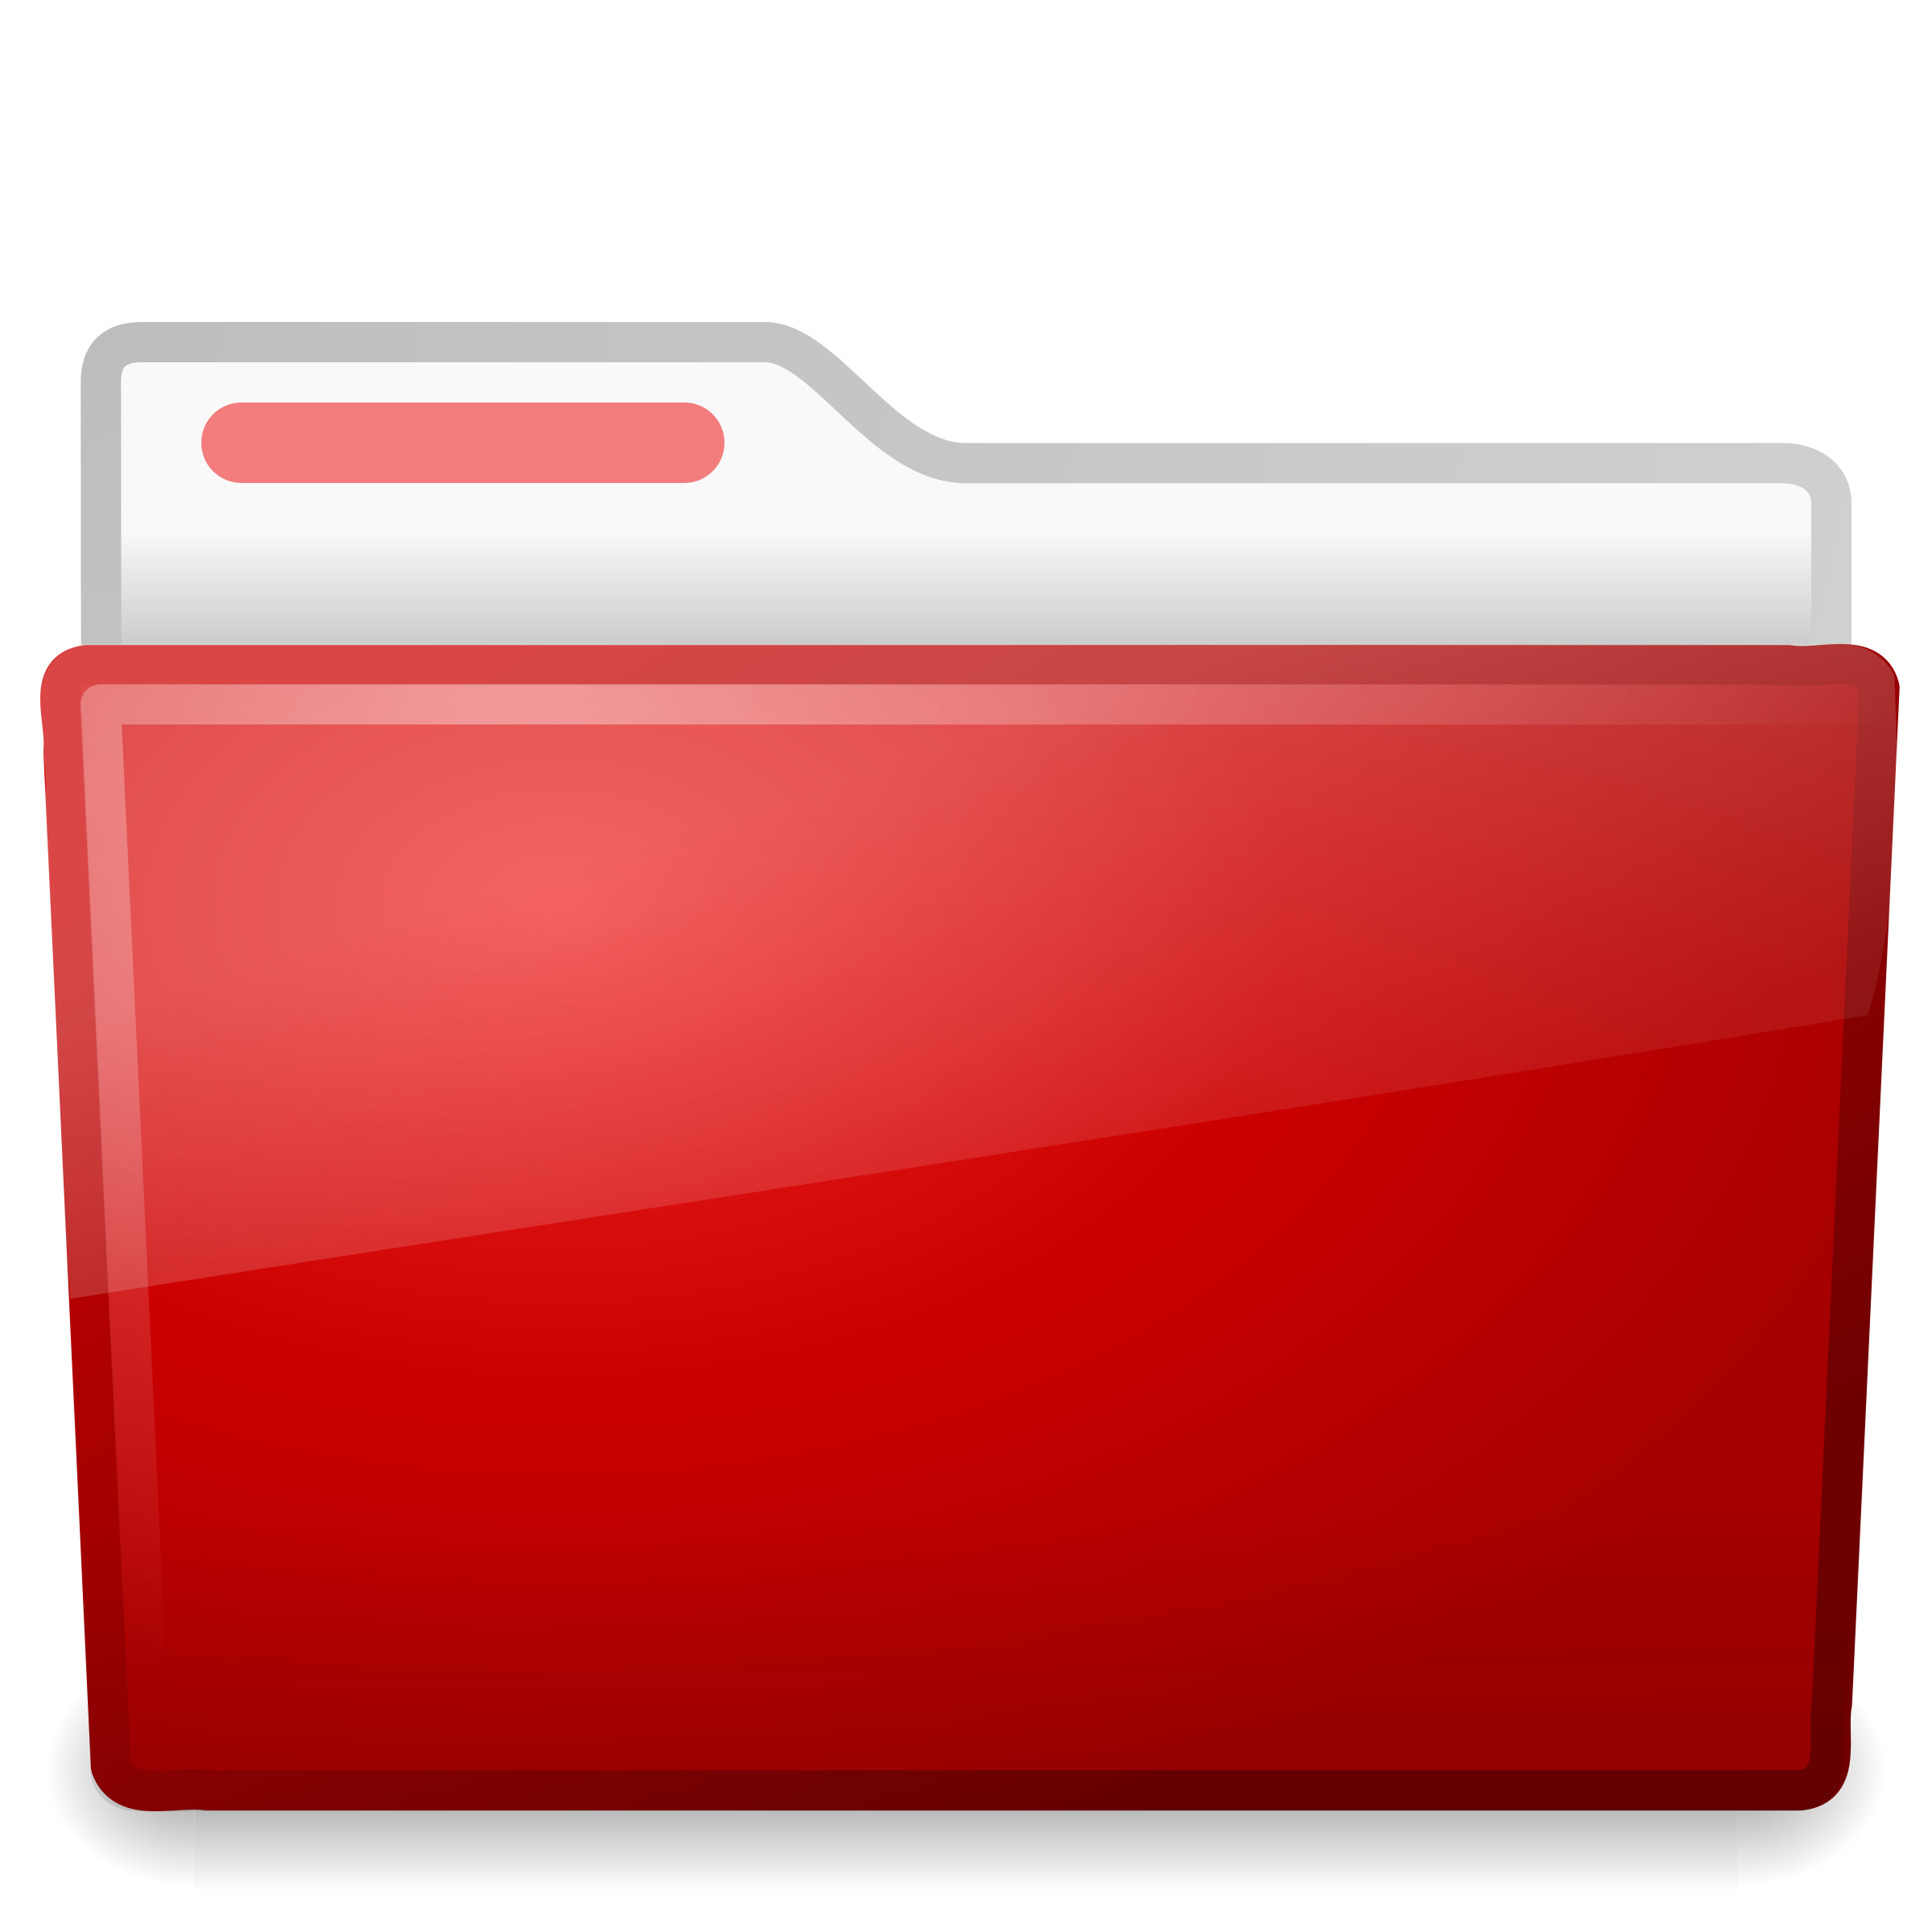 2400x2400 Red File Folder Vector Clipart Image